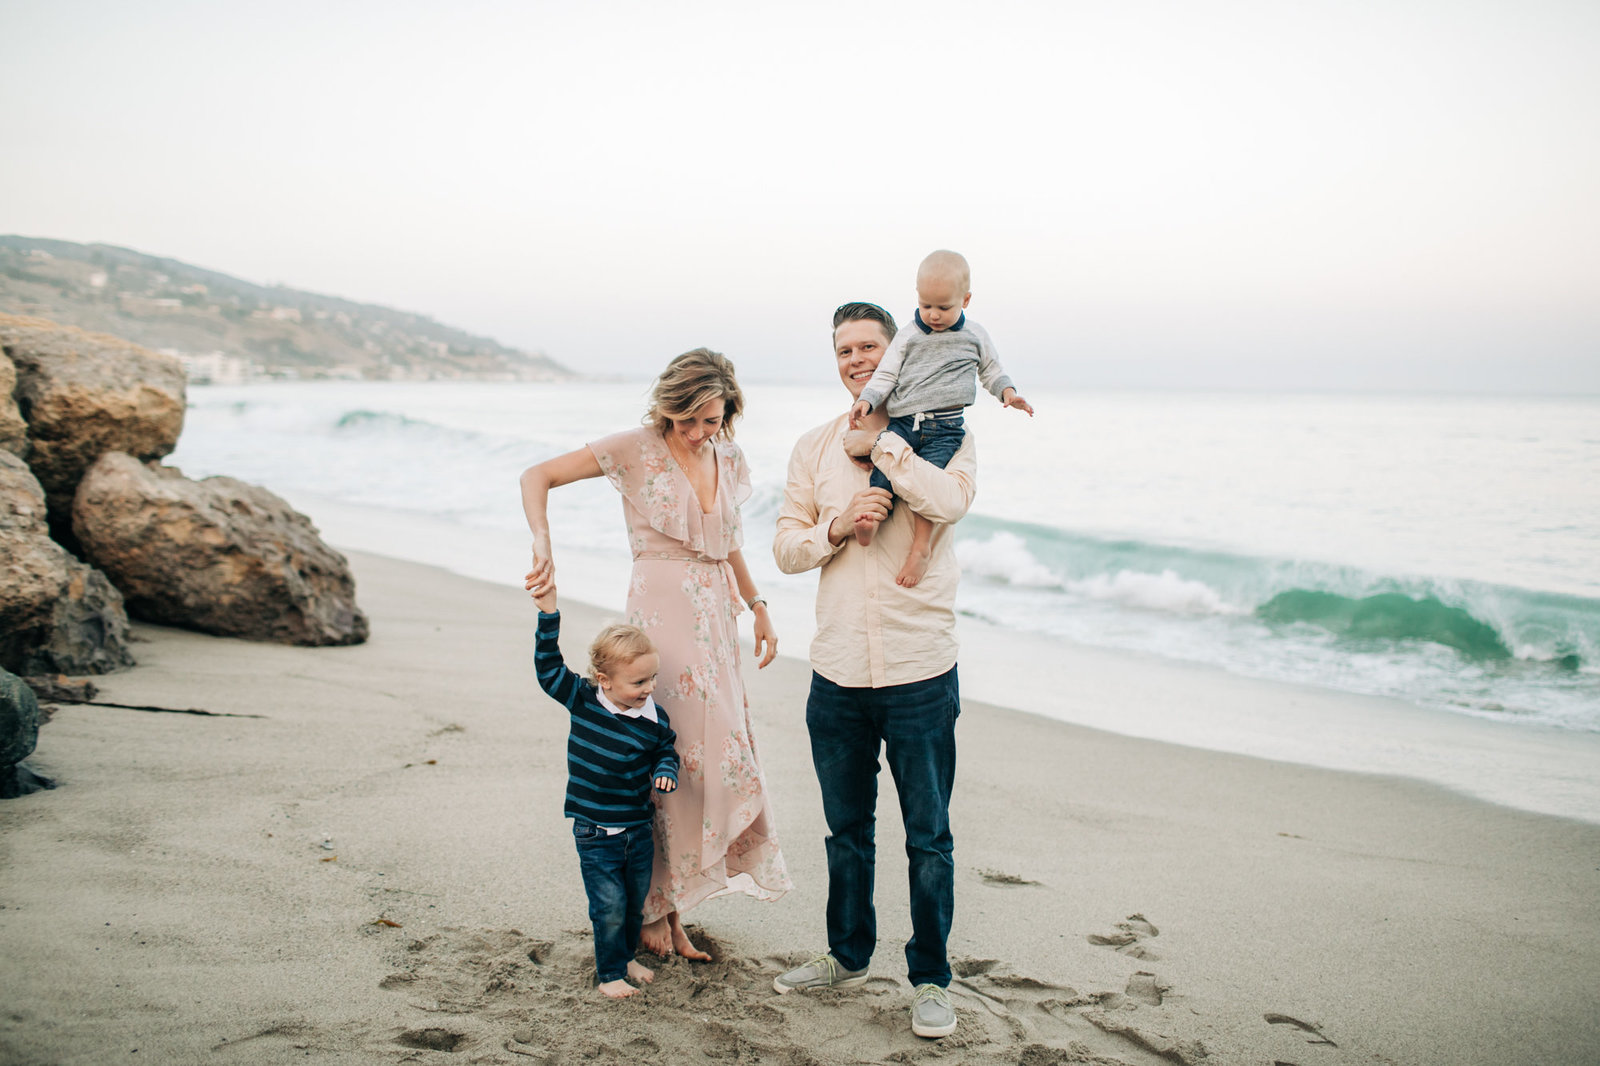 Malibu_Family_Session_Lily_Ro_Photography-6297